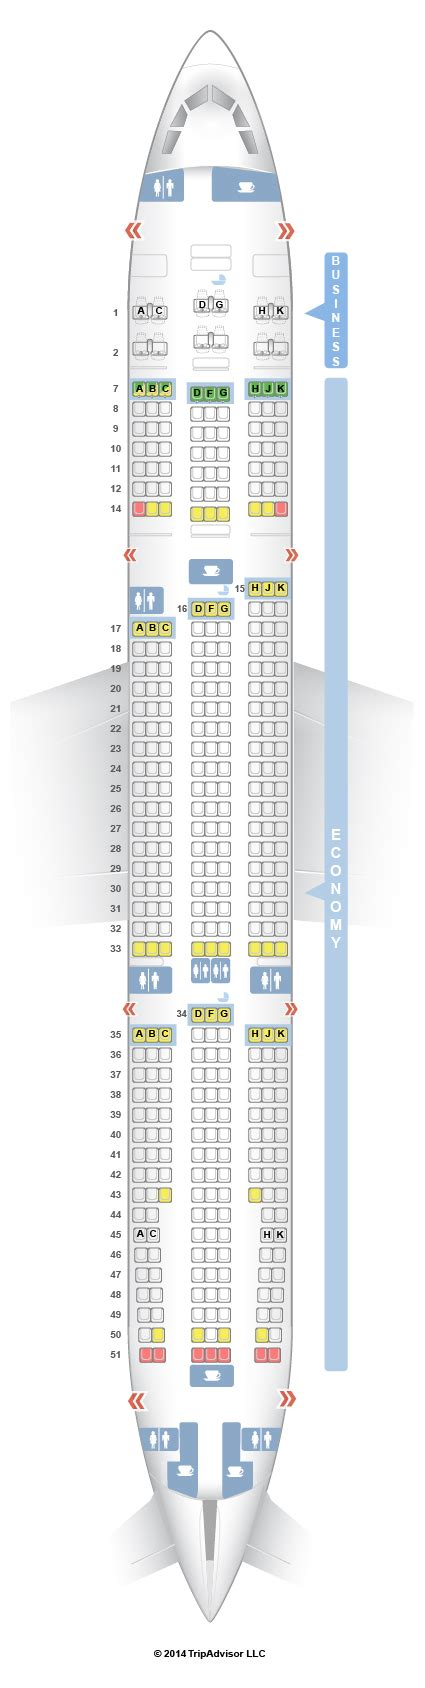 airasia x flight seat layout cathay pacific aircraft 333 seat plan the best and